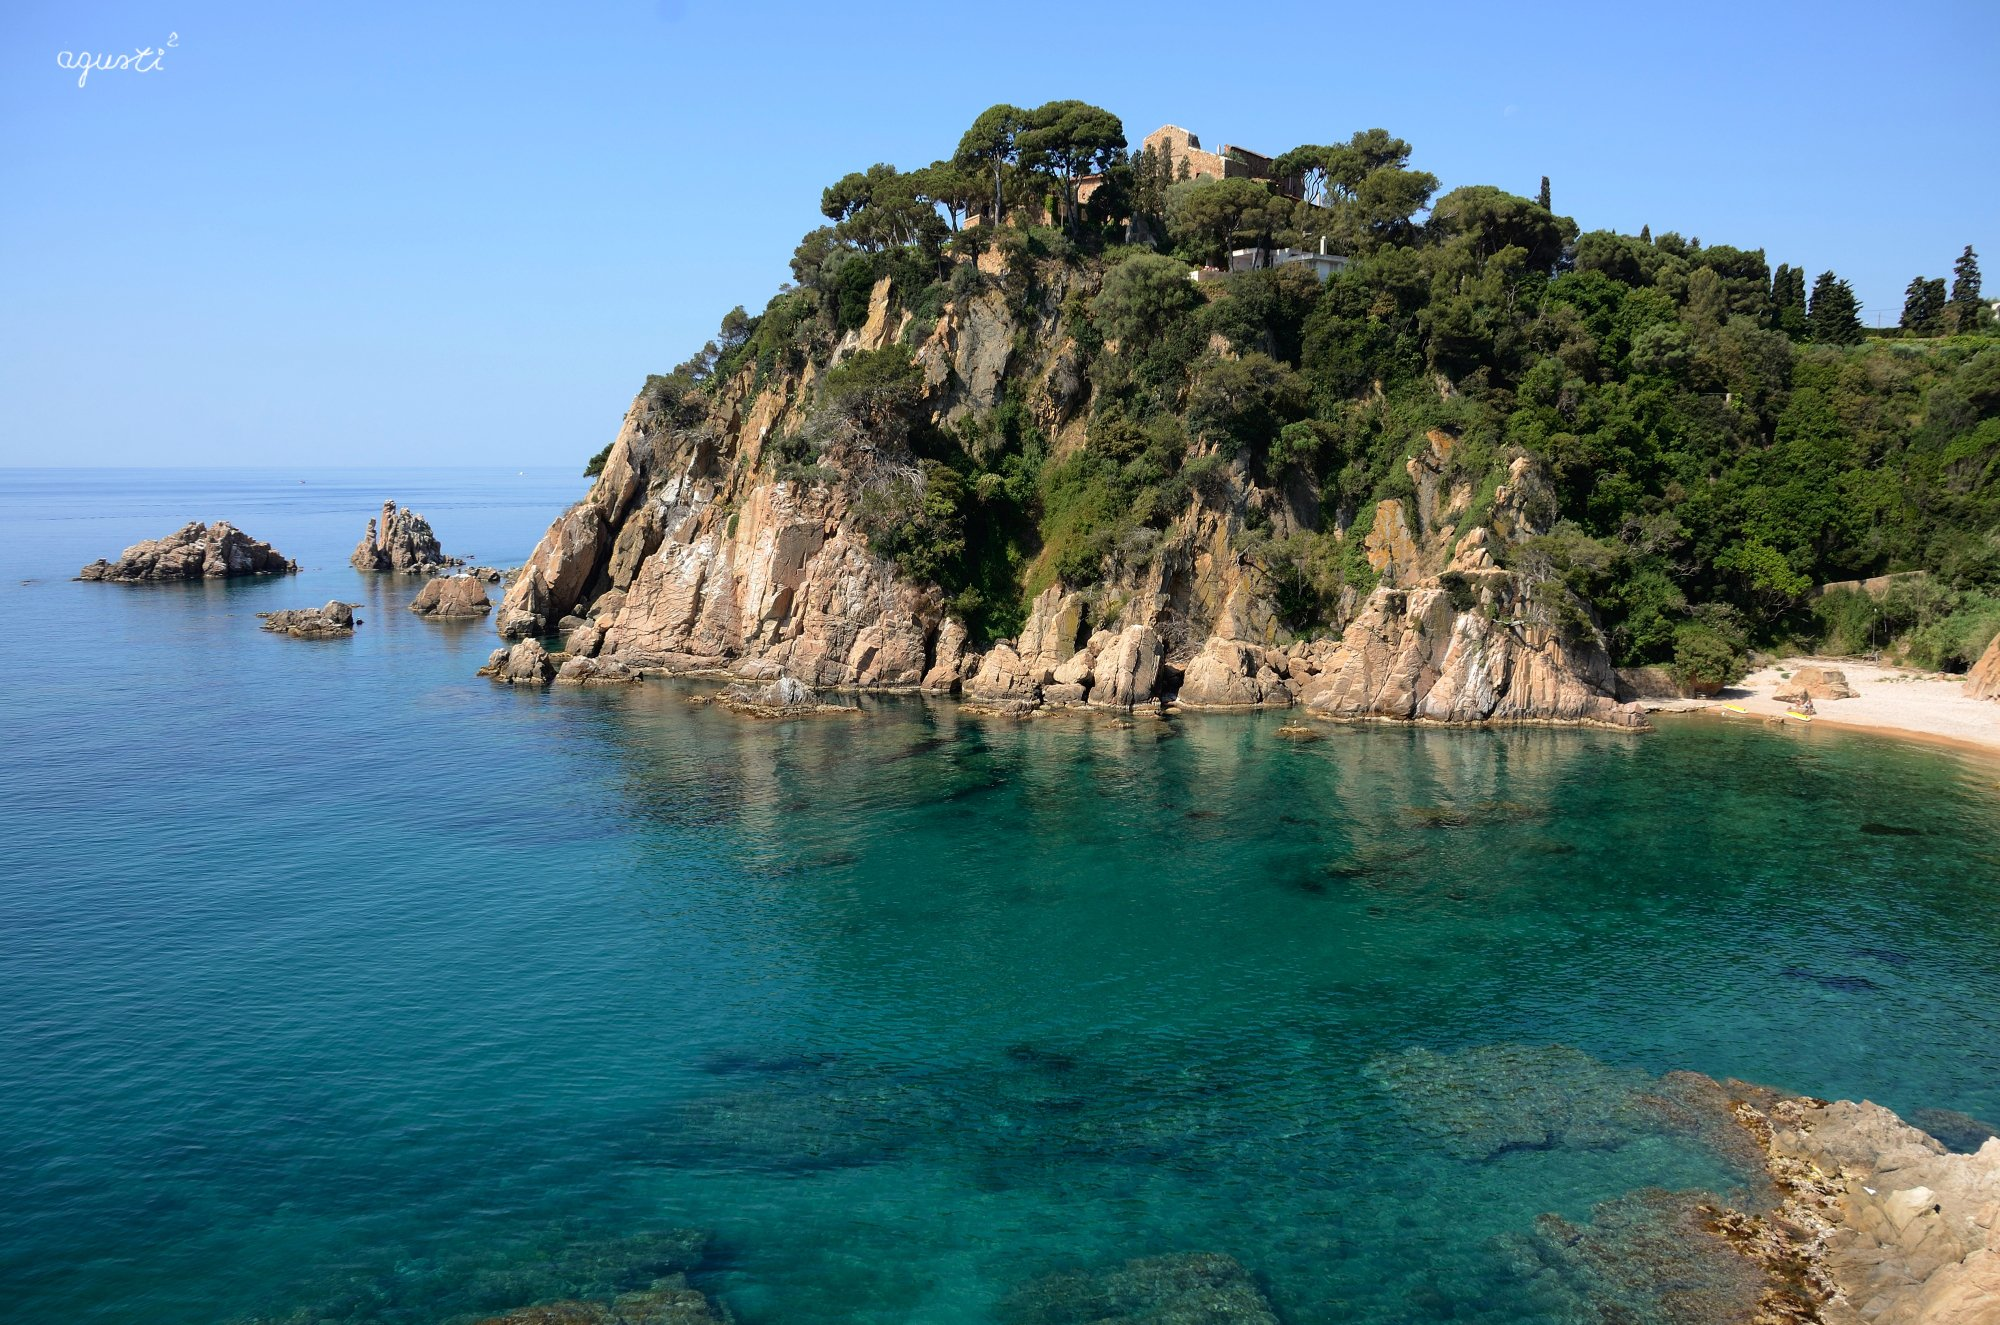 Blanes_05 (06-2015)_01